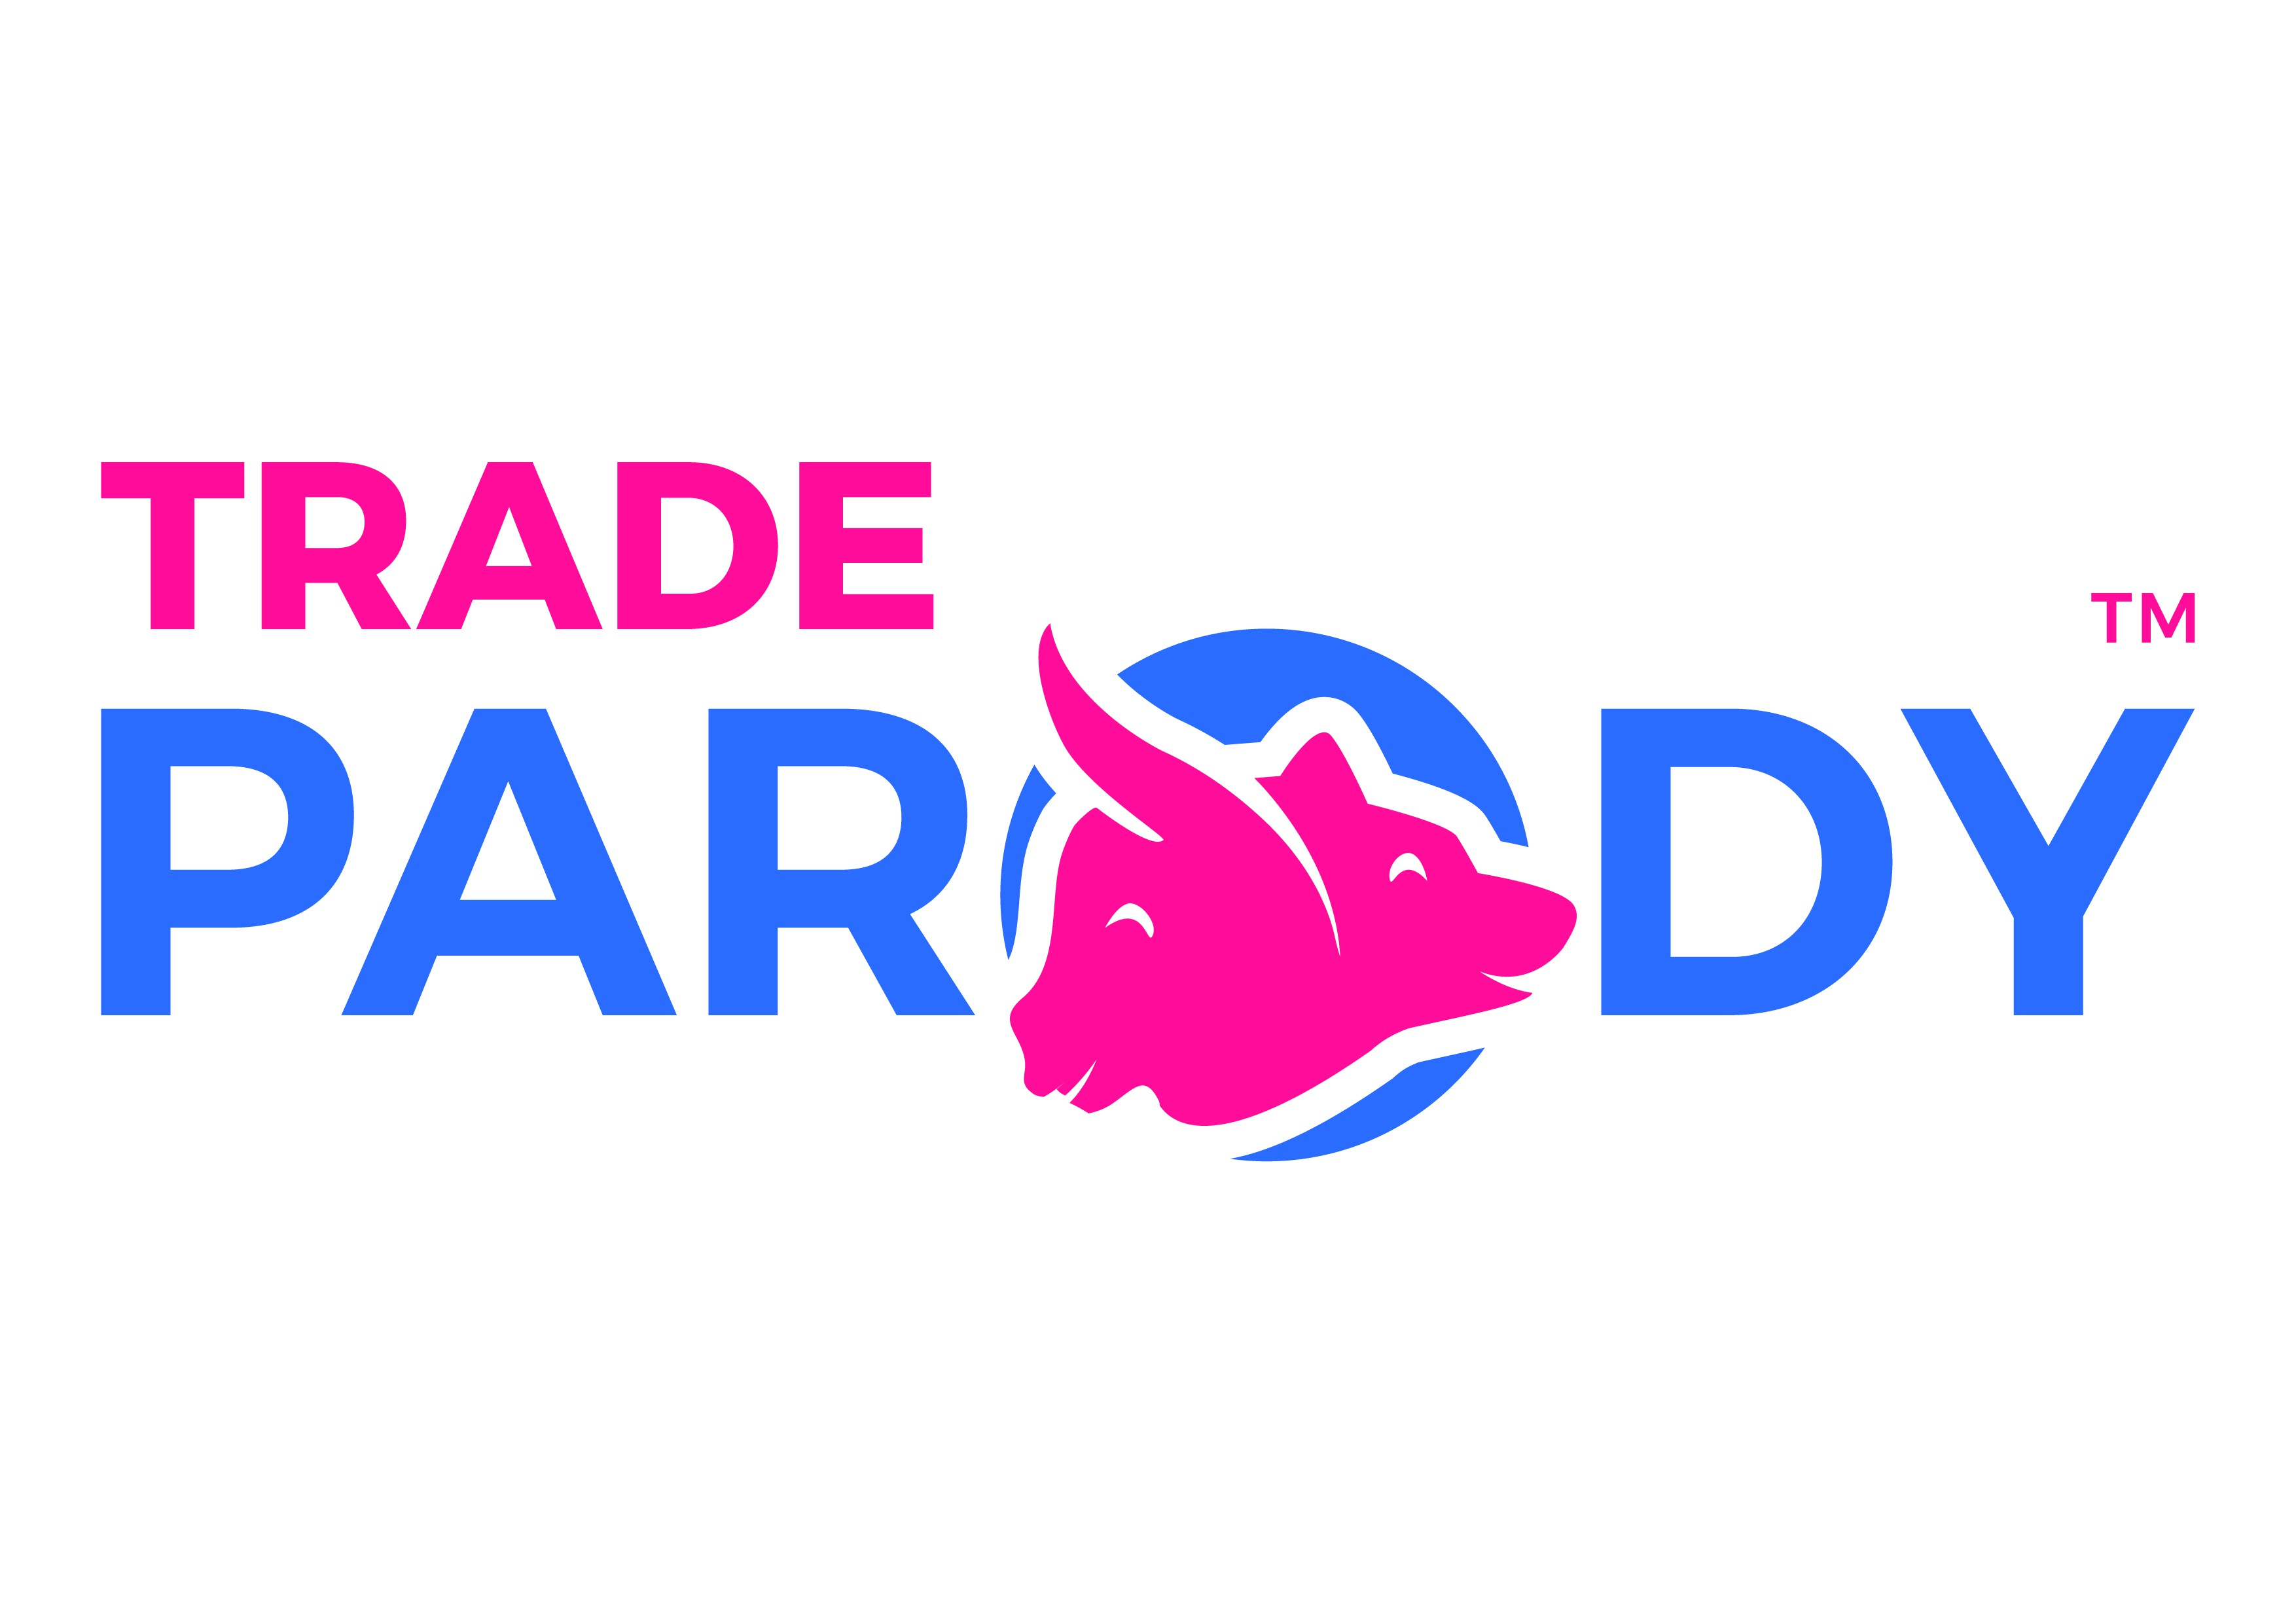 Logo for Startup that is Parody of Wallstreet